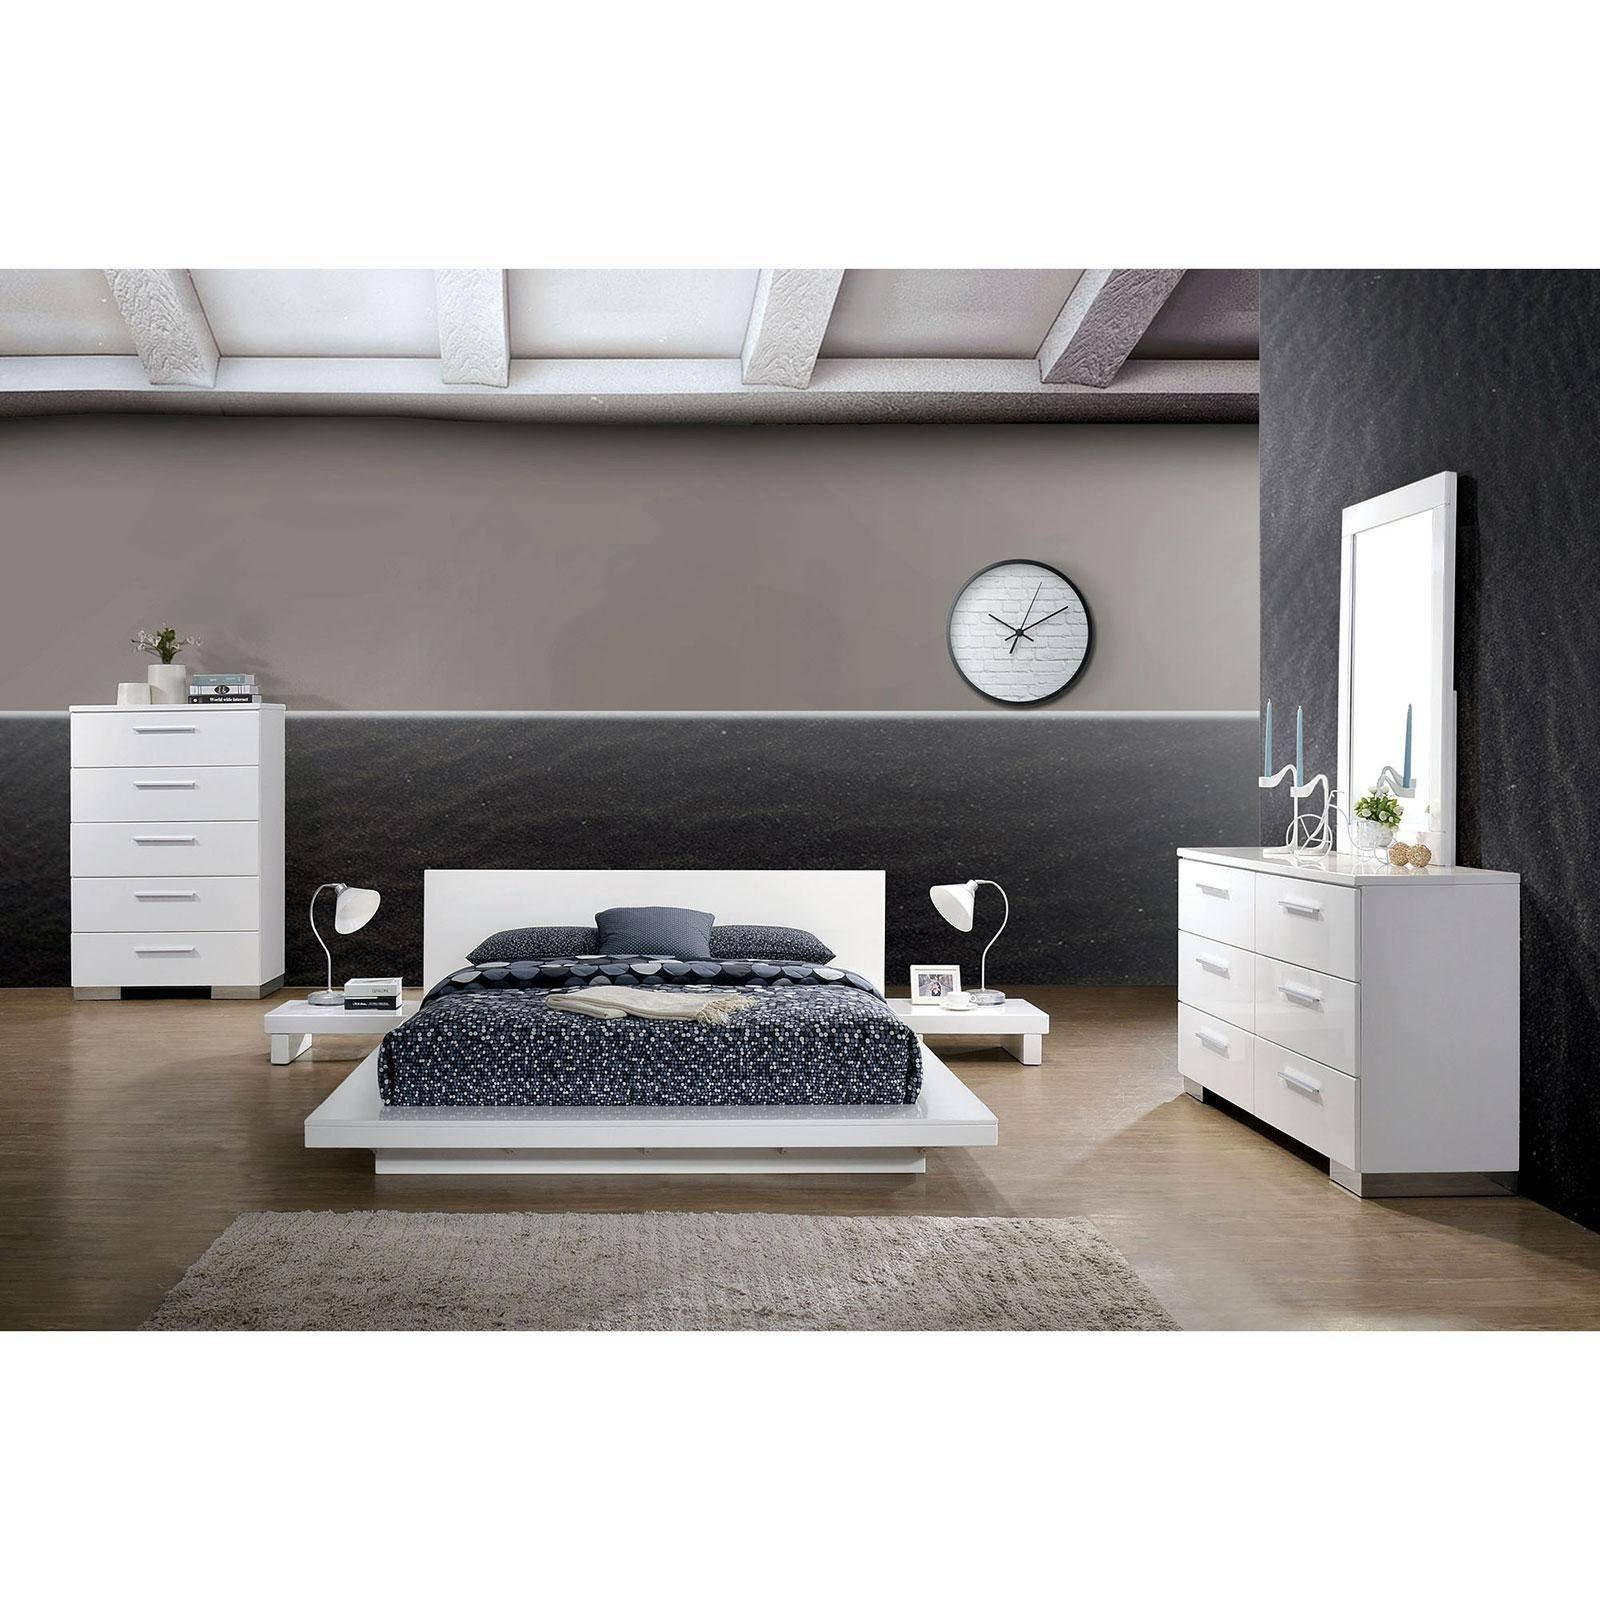 White Contemporary Bedroom Furniture New Contemporary Wood California King Platform Bed In White Christie by Foa Group